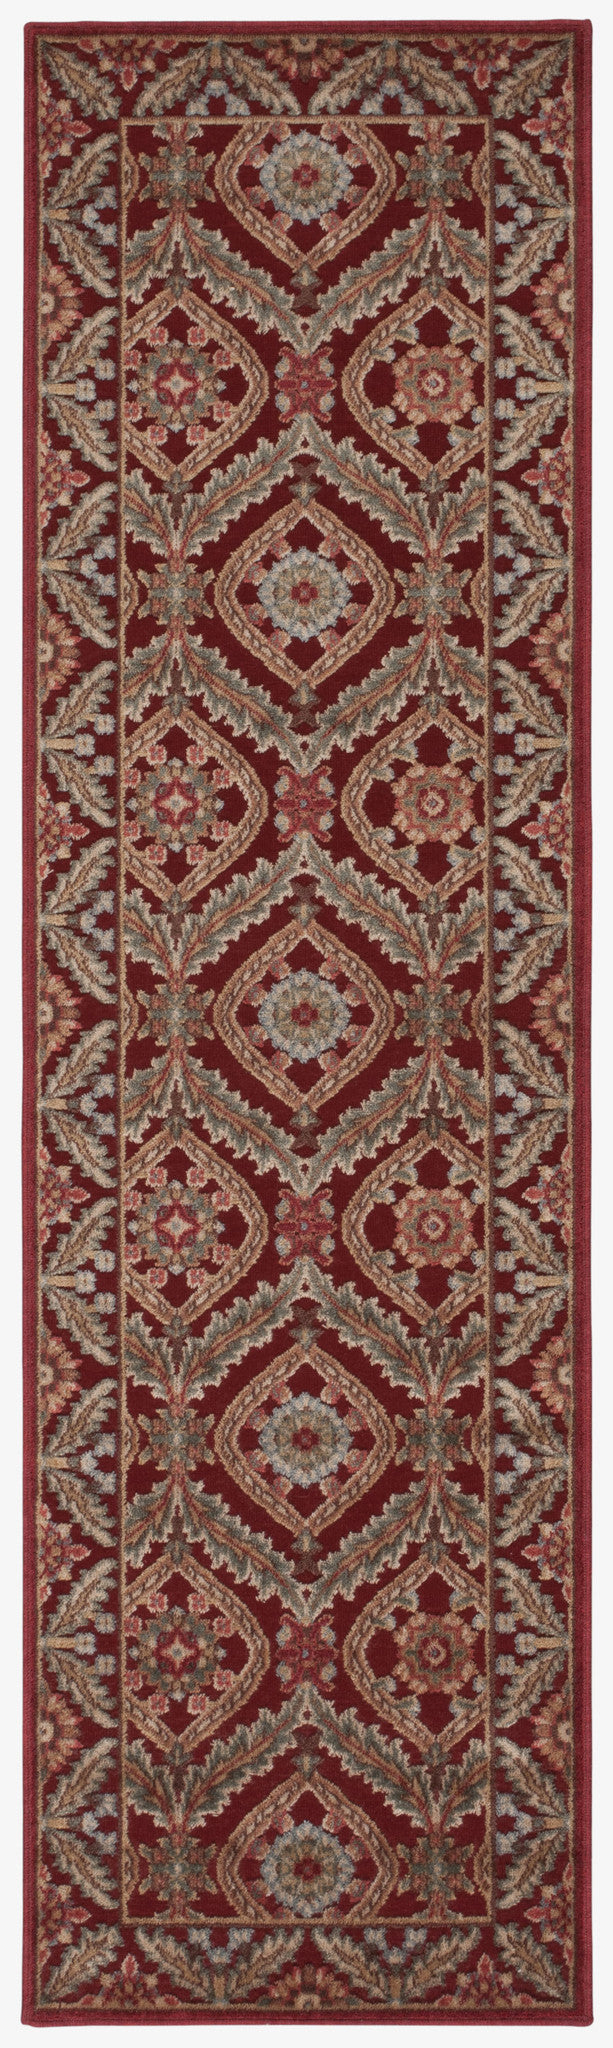 Nourison Graphic Illusions Red Area Rug GIL24 RED